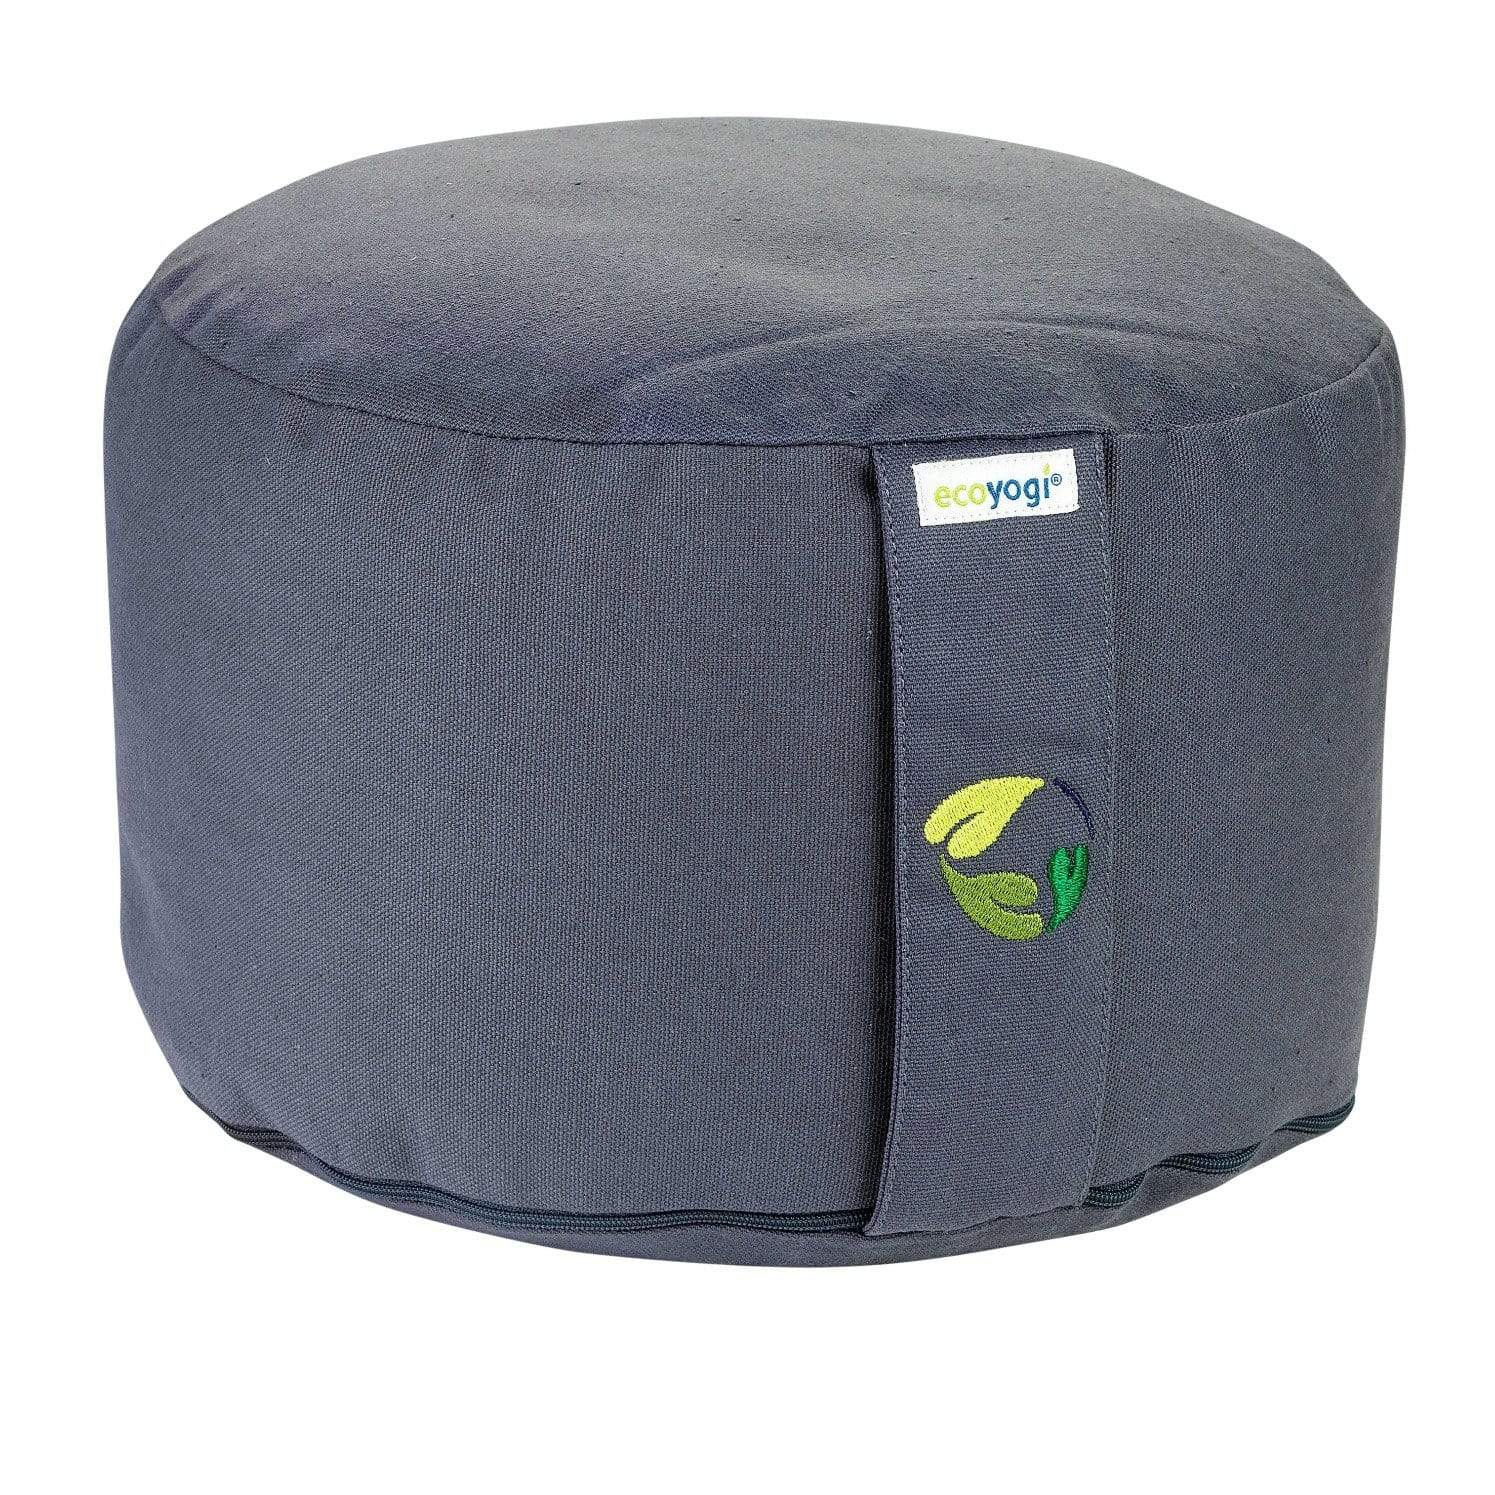 sustainable gifts Ecoyogi Grey Organic cotton meditation cushion high - grey